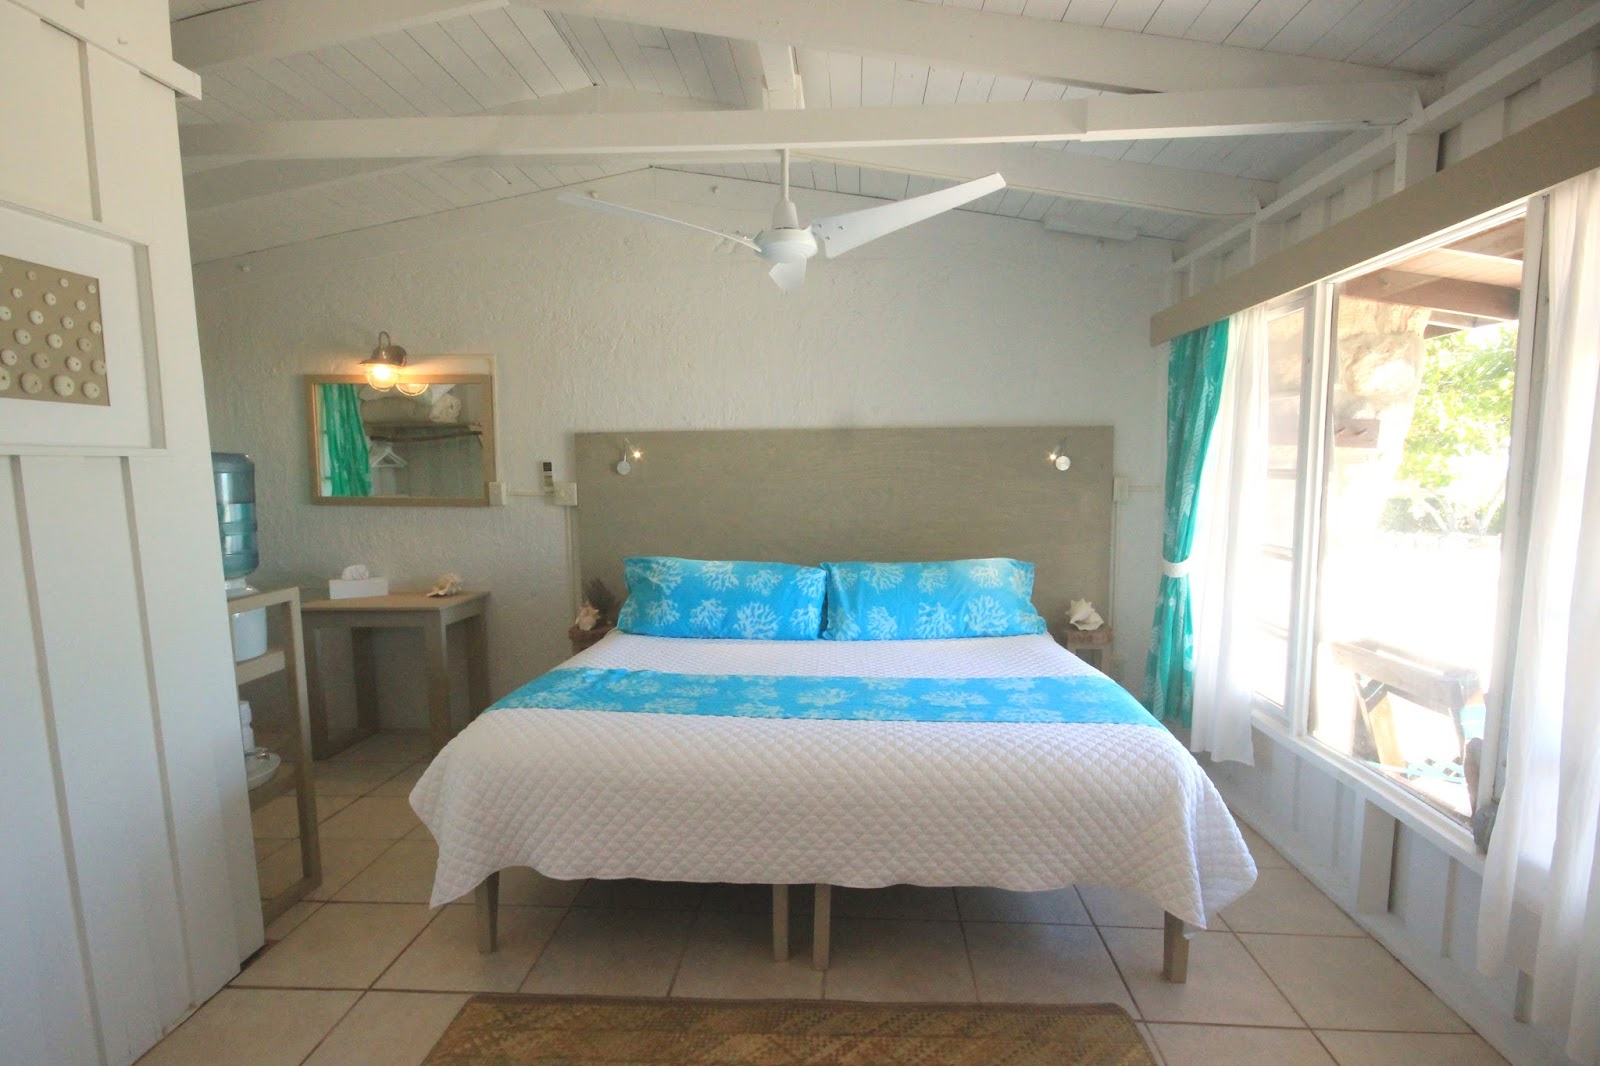 Small hope bay lodge andros island bahamas cabin renovations are out new lighting is perfect and the locally made decorations look wonderful check out all these beautiful cabins publicscrutiny Images